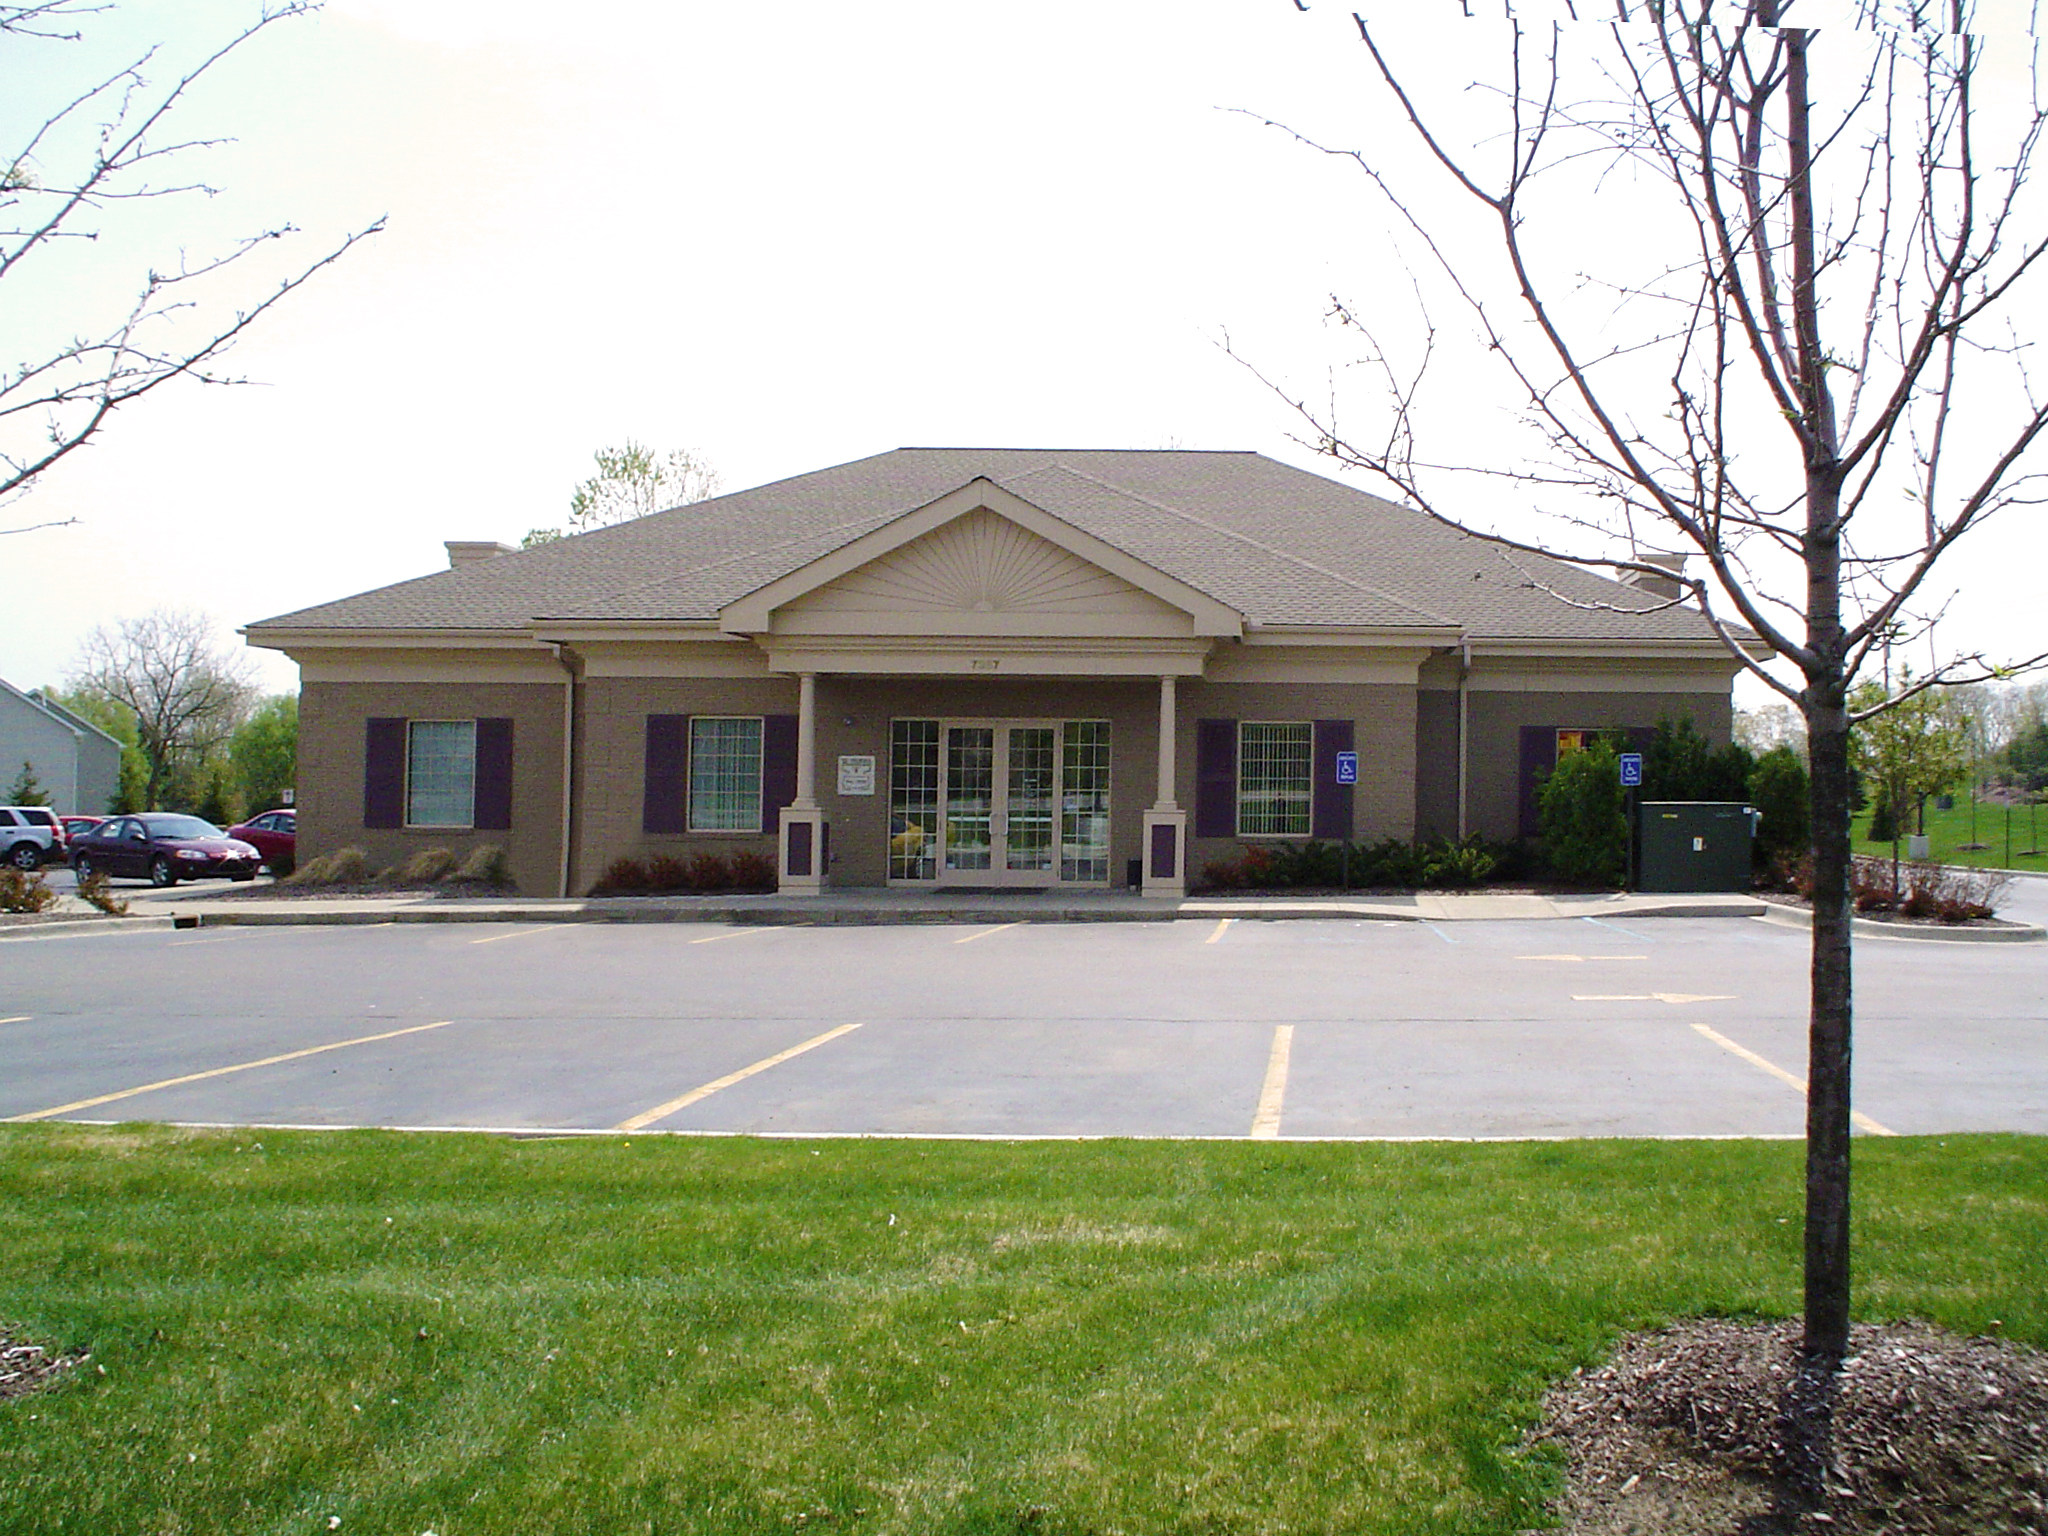 Photograph of Genisys Credit Union's Clarkston - Deer Lake Branch